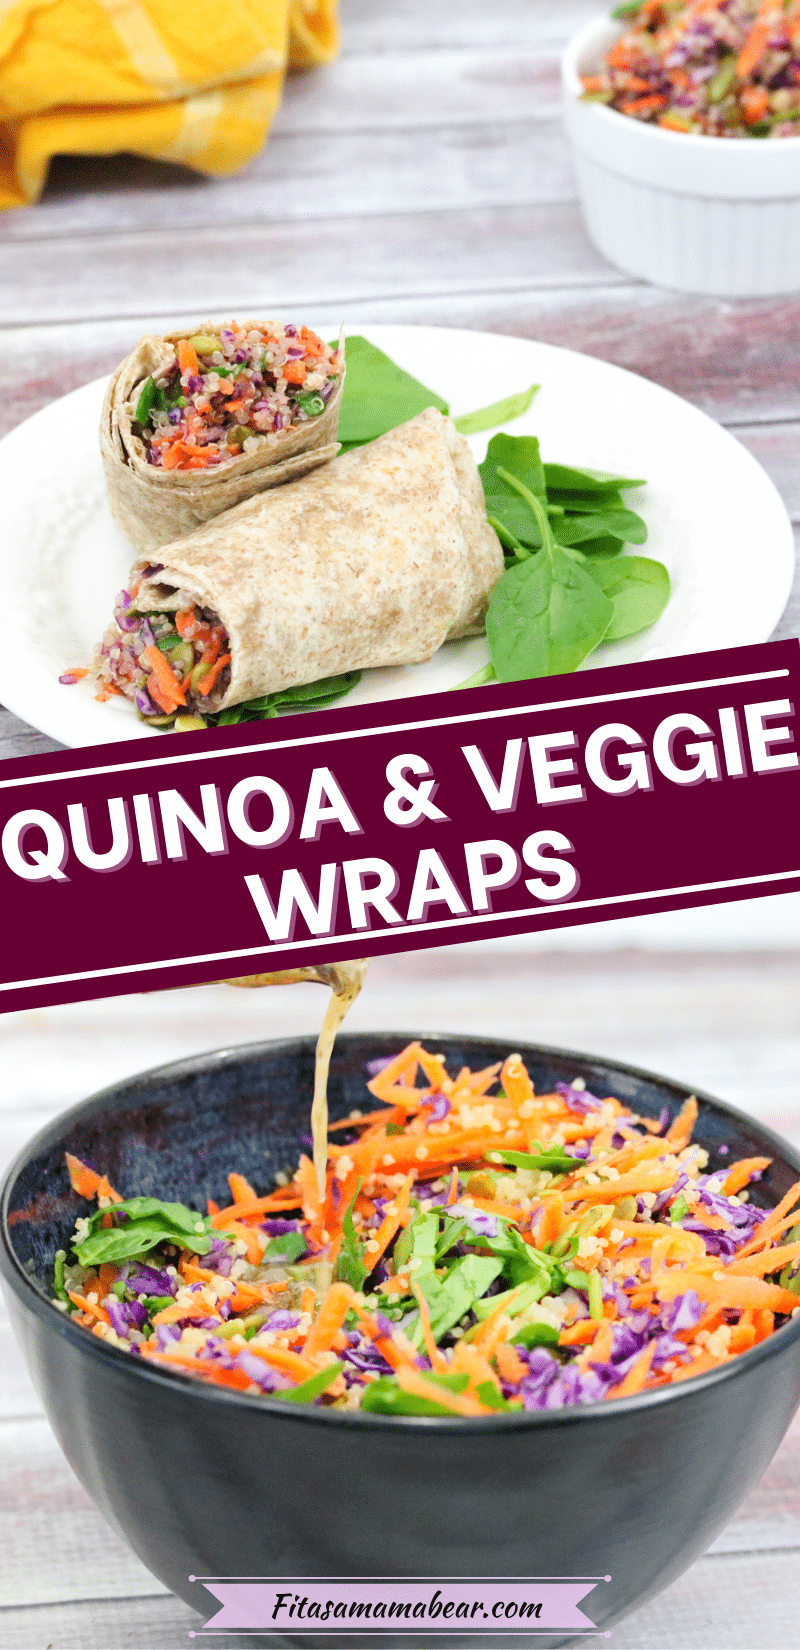 Pinterest image with text: two images the top of a veggie wrap sliced in half on white plate the bottom of quinoa salad in blue bowl